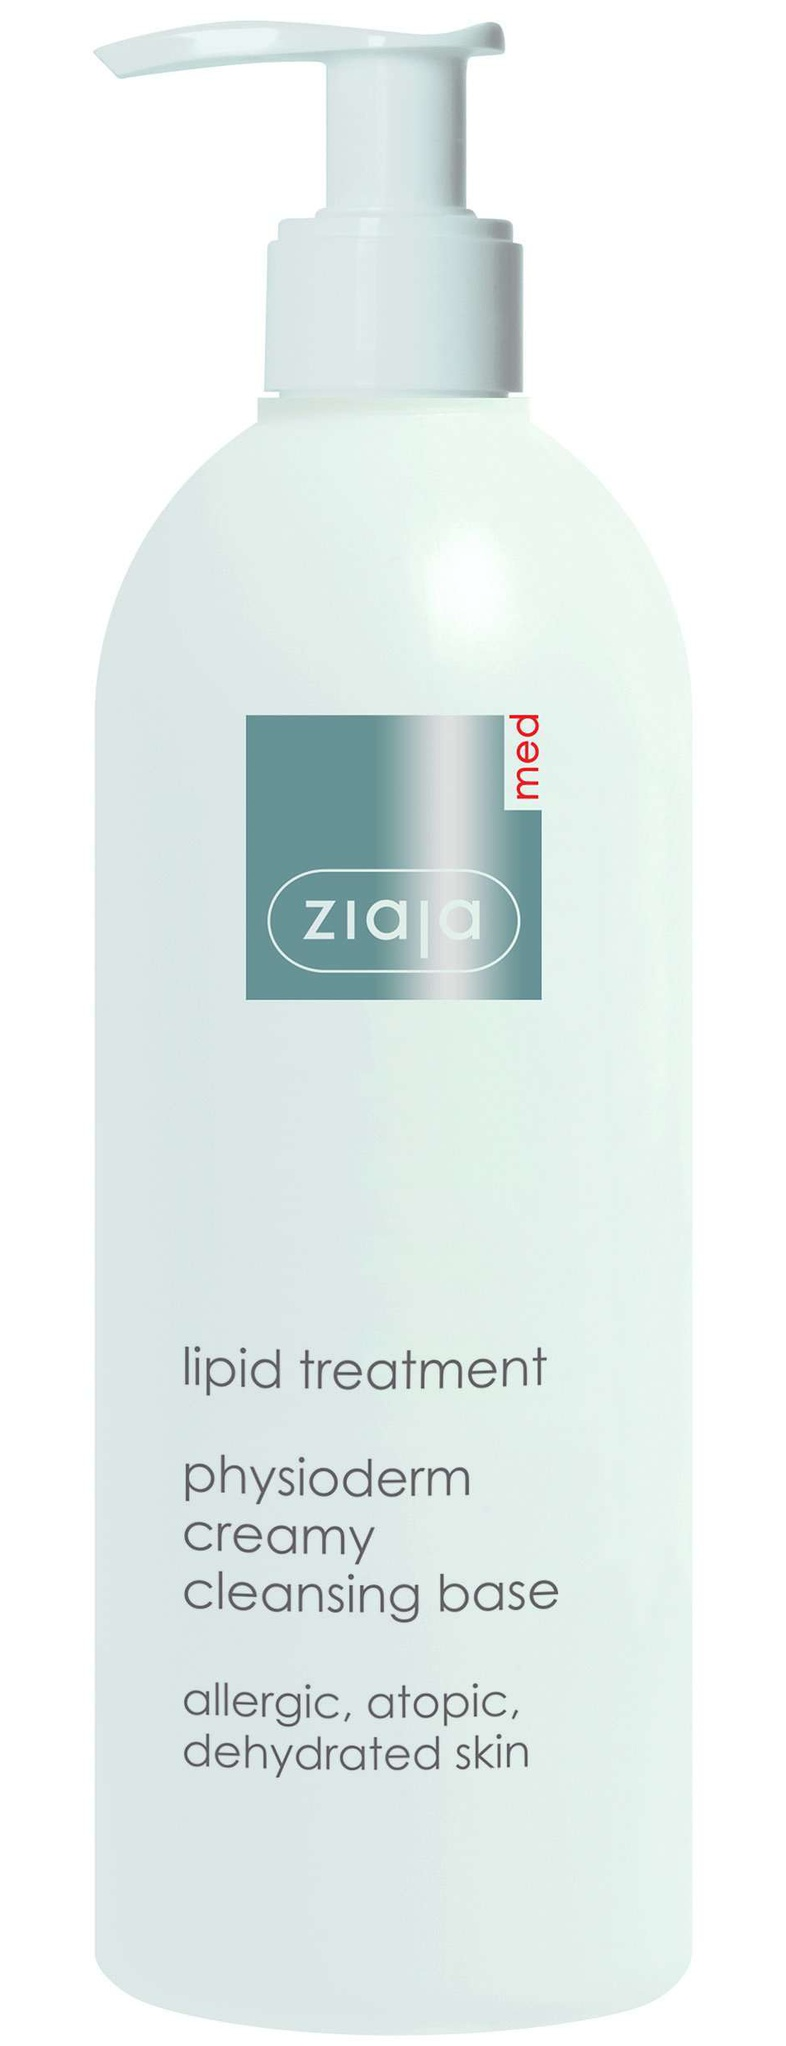 Ziaja Med Lipid Physioderm Creamy Cleansing Base